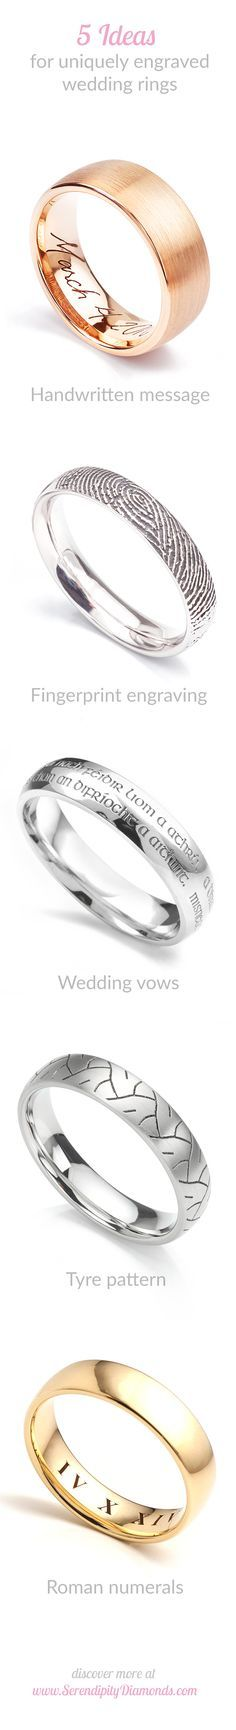 5 uniquely styled suggestions for spicing up a plain wedding ring. From…